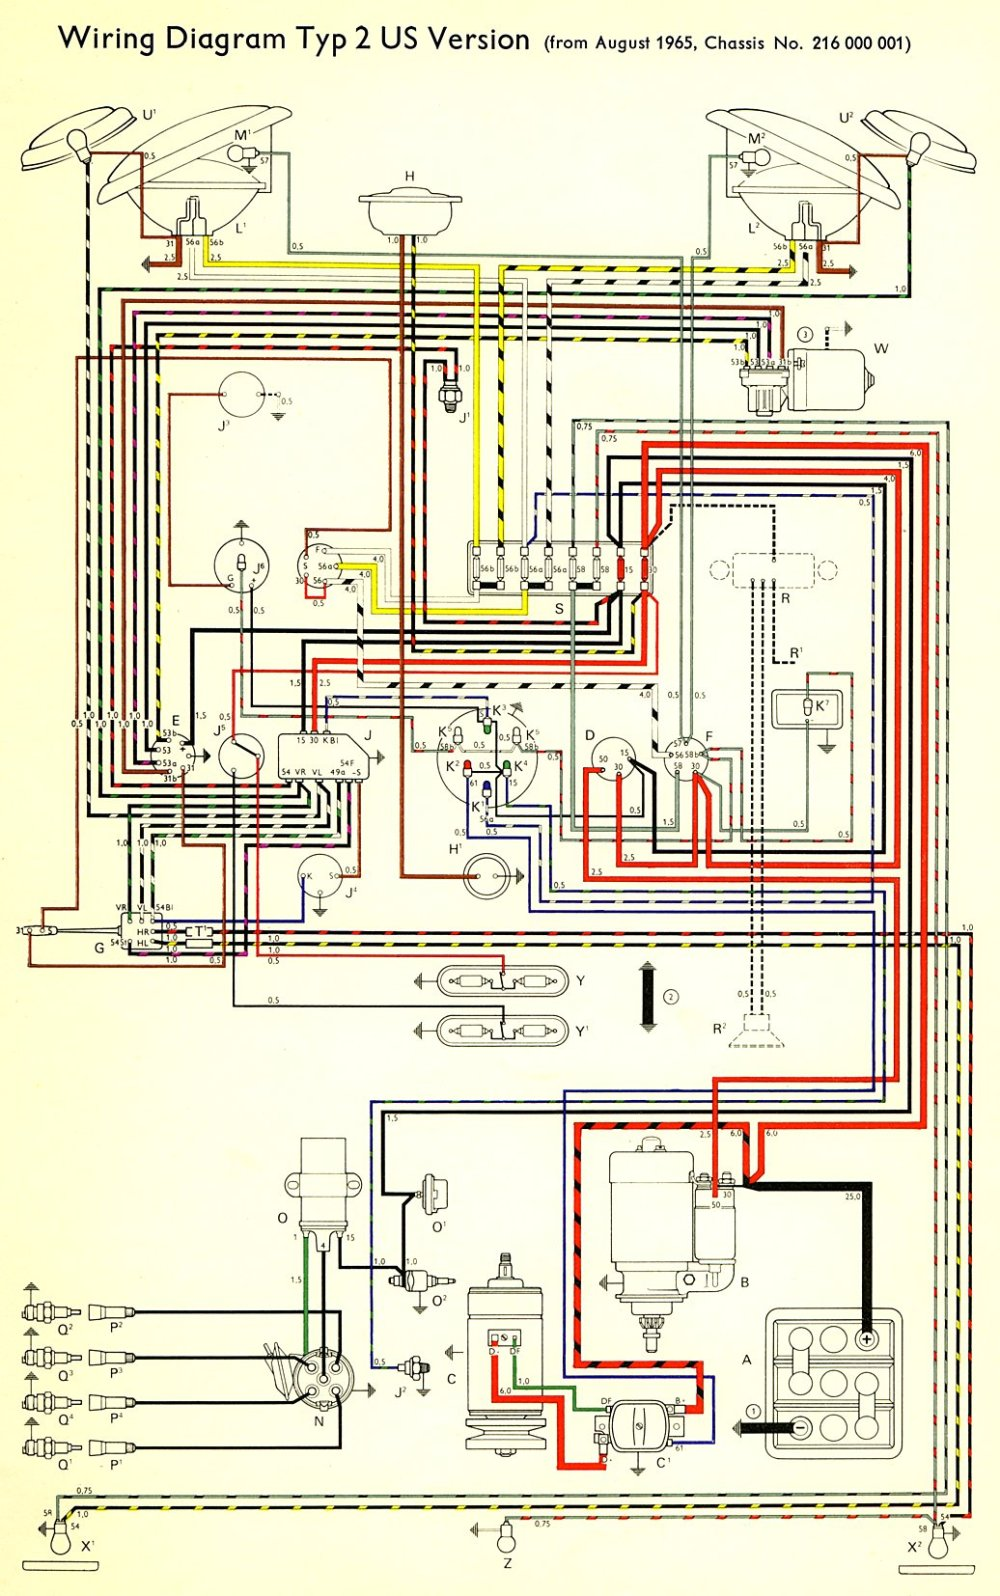 medium resolution of 1966 chevy c10 wiring harness free download diagram wiring library 1966 chevy c10 wiring harness free download diagram